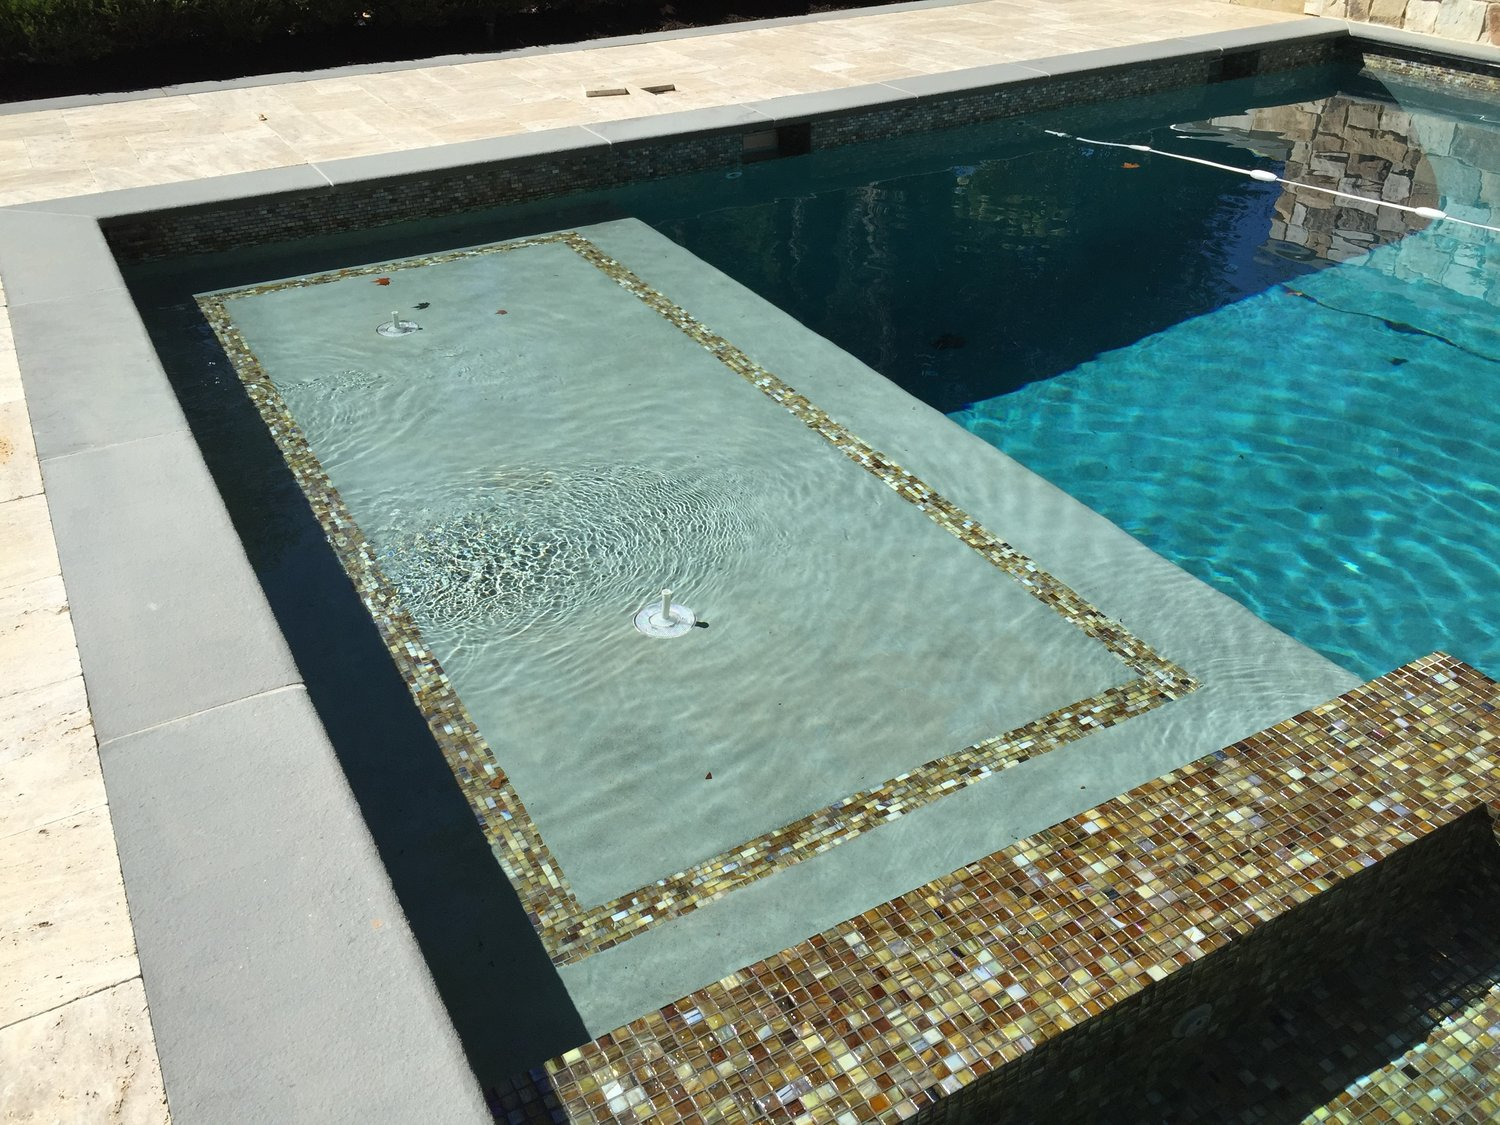 100sf sun shelf with led bubbler fountains - automatic pool cover -